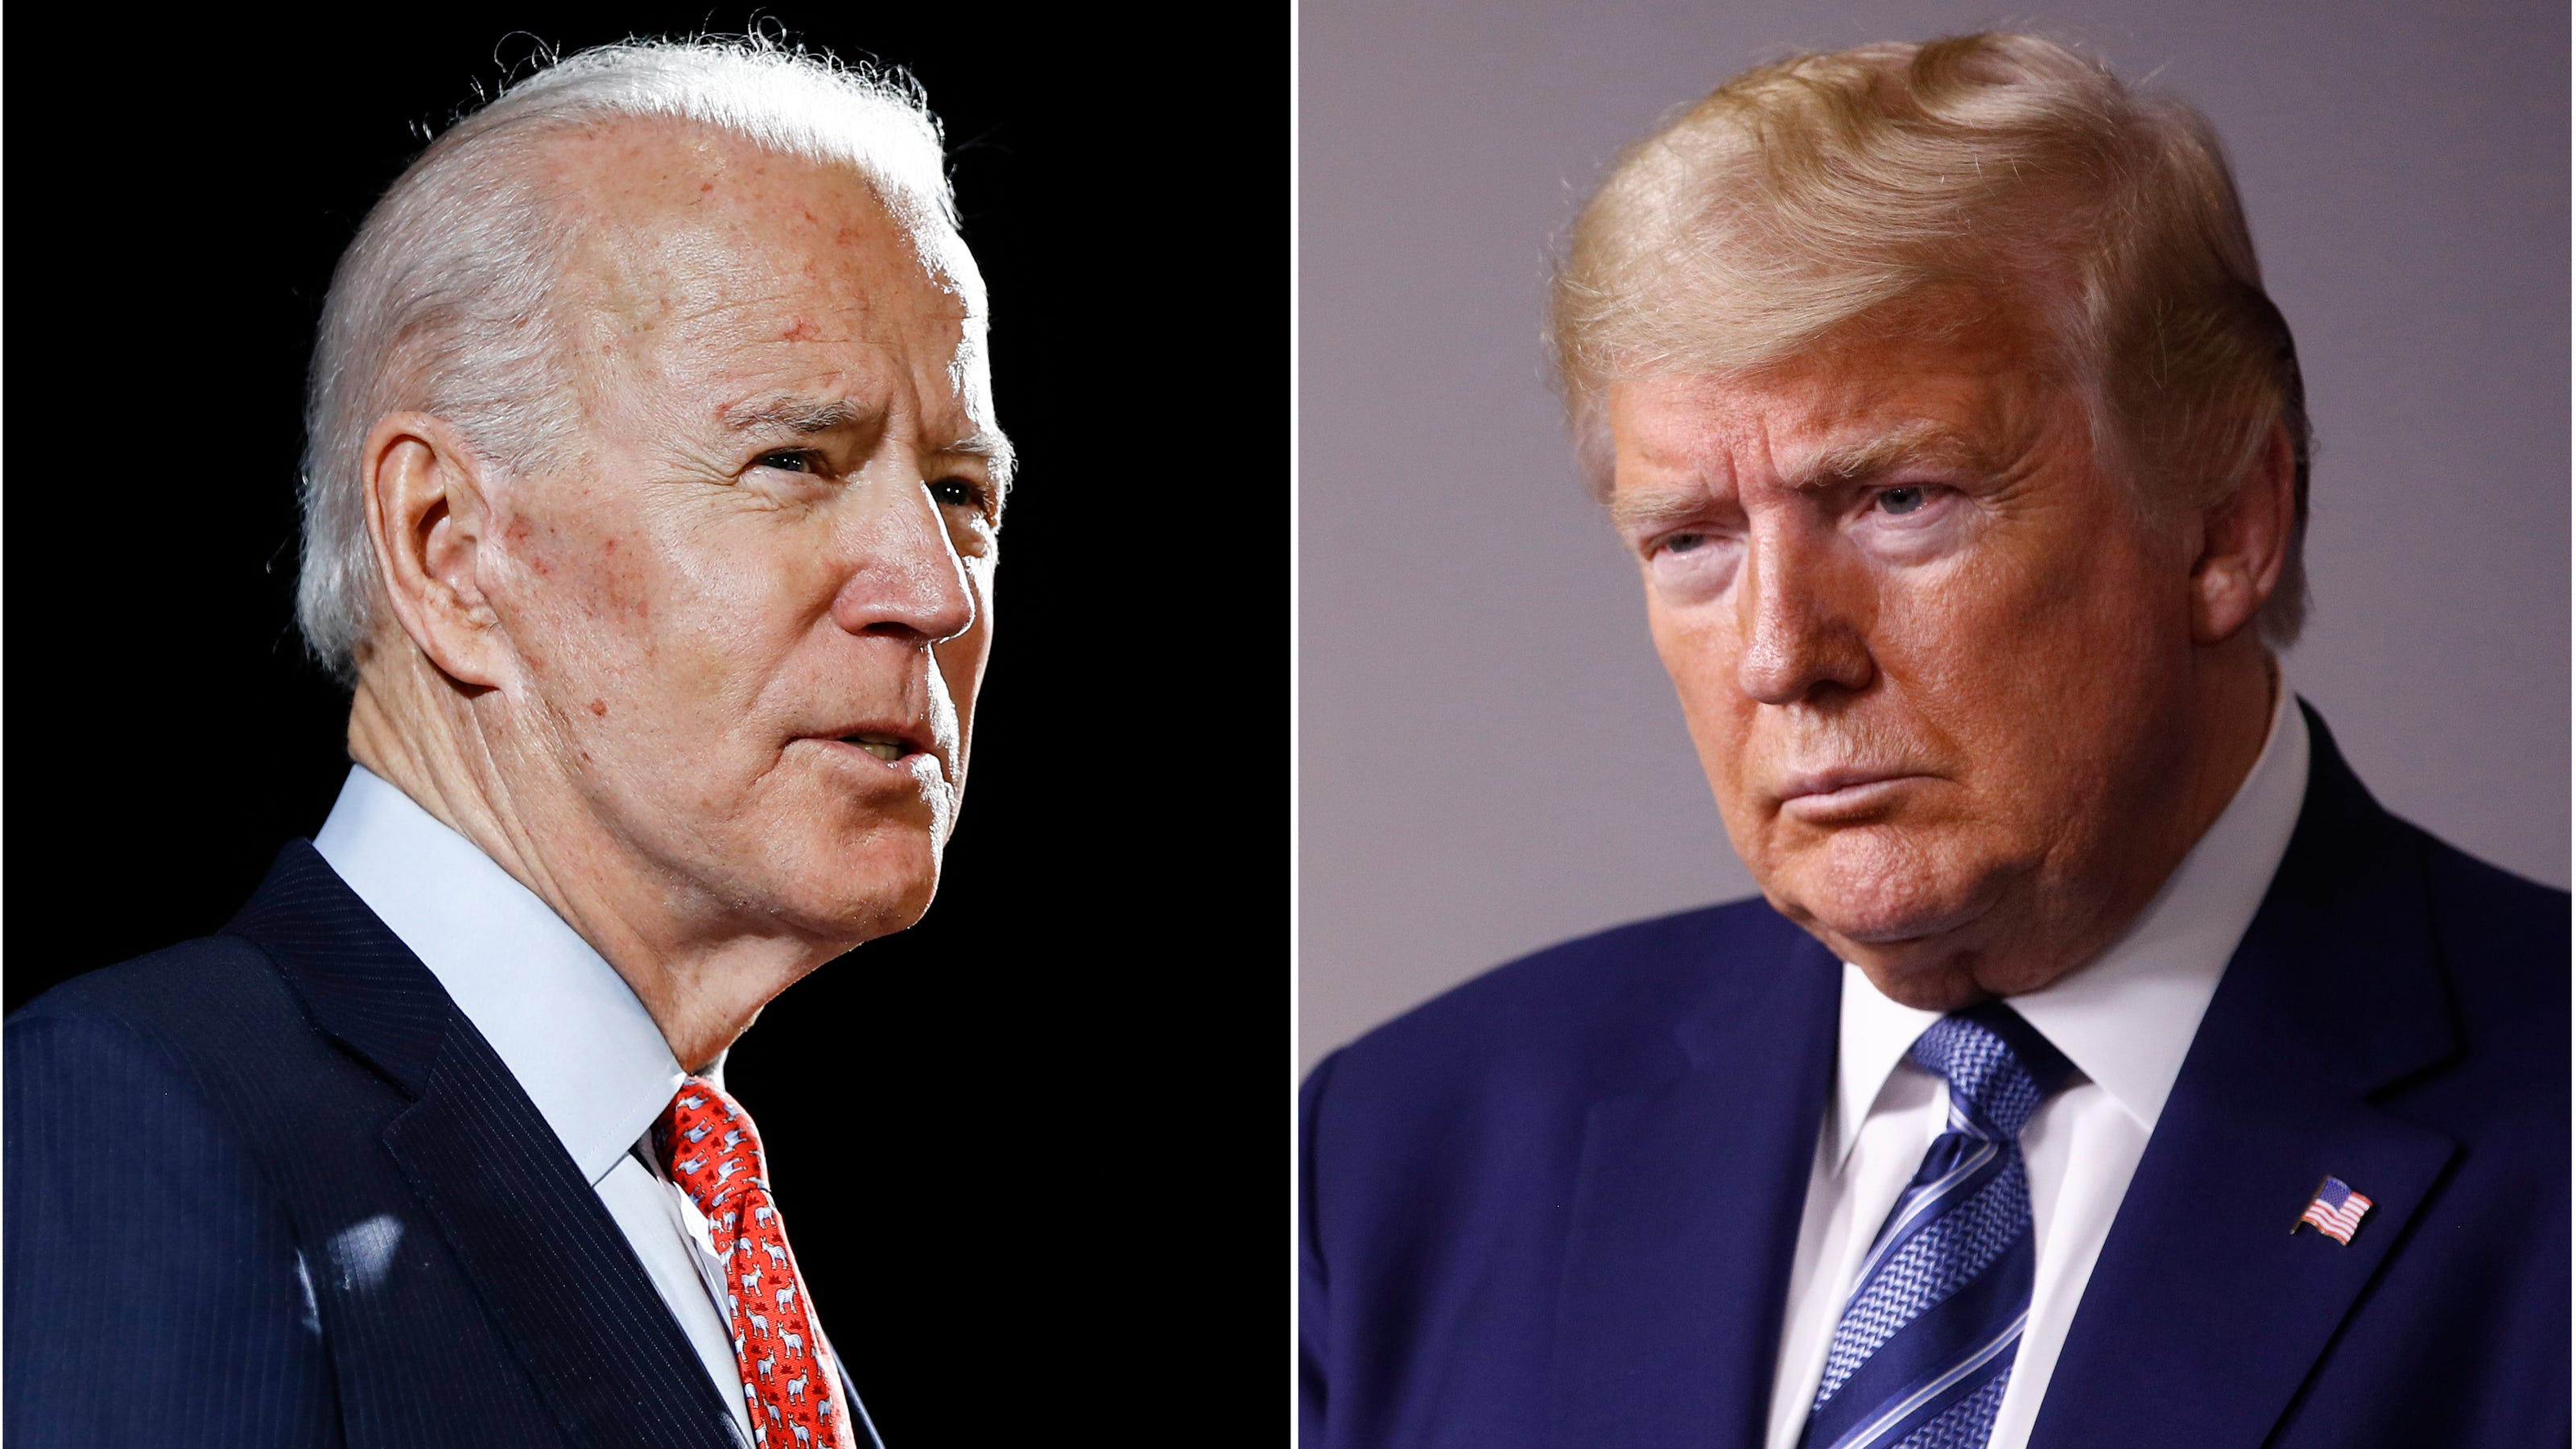 2020 Election: What to know about Joe Biden, Donald Trump's town halls